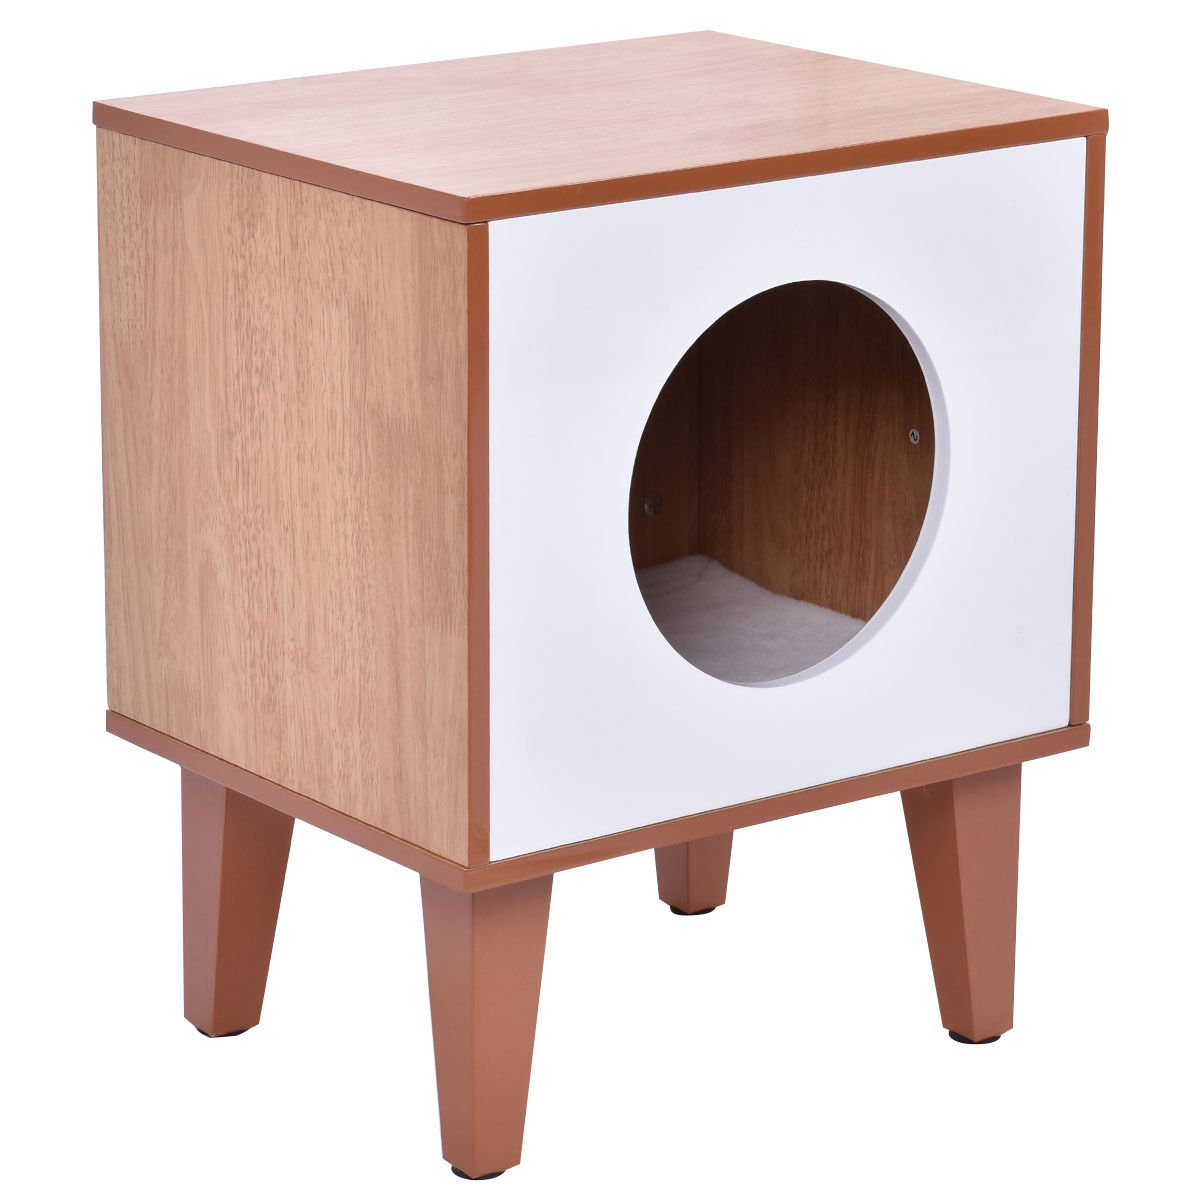 New Cat Box Cushion Bed Cleaning Enclosure Hidden Pet Cabinet Furniture Wood by totoshoppet (Image #8)